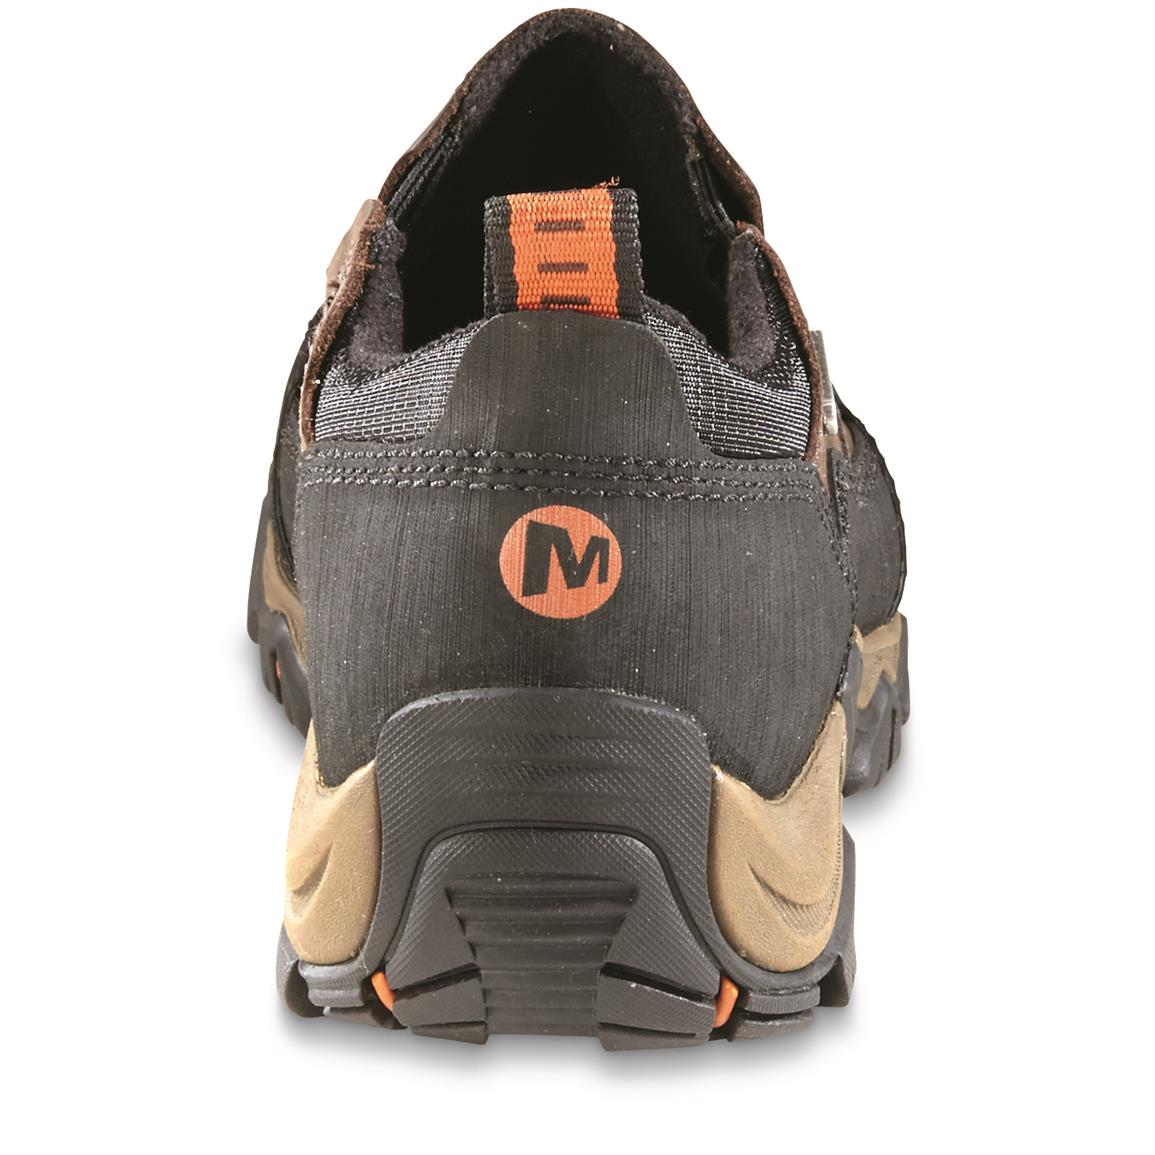 Merrell Polarand Rove Waterproof Moc Toe Slip-on Shoes, Back